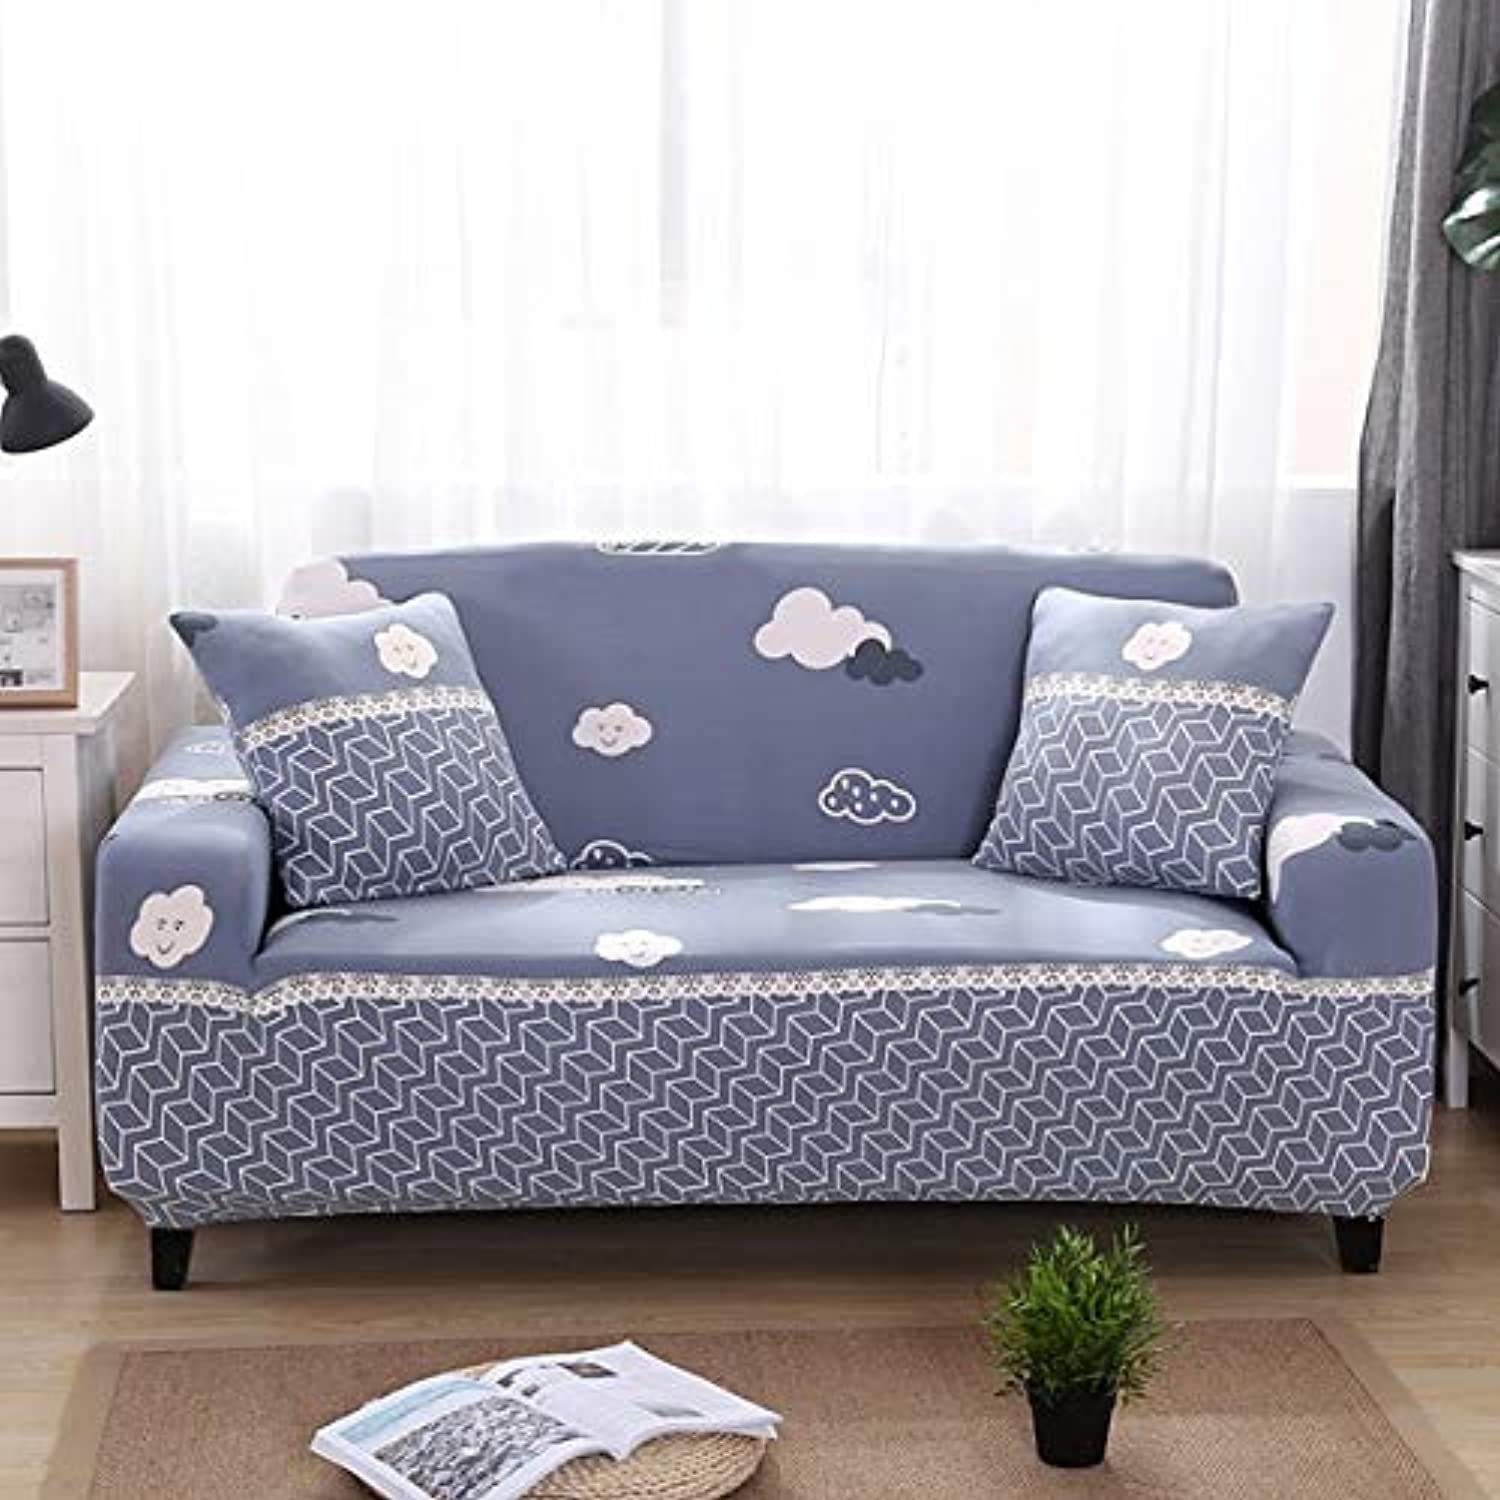 Farmerly Minimalist Geometric Stripe Printing Sofa Predective Slipcover Case Anti-Dirty Dust-Proof Elastic Couch Seat Cover for Living   13, Tow Seater